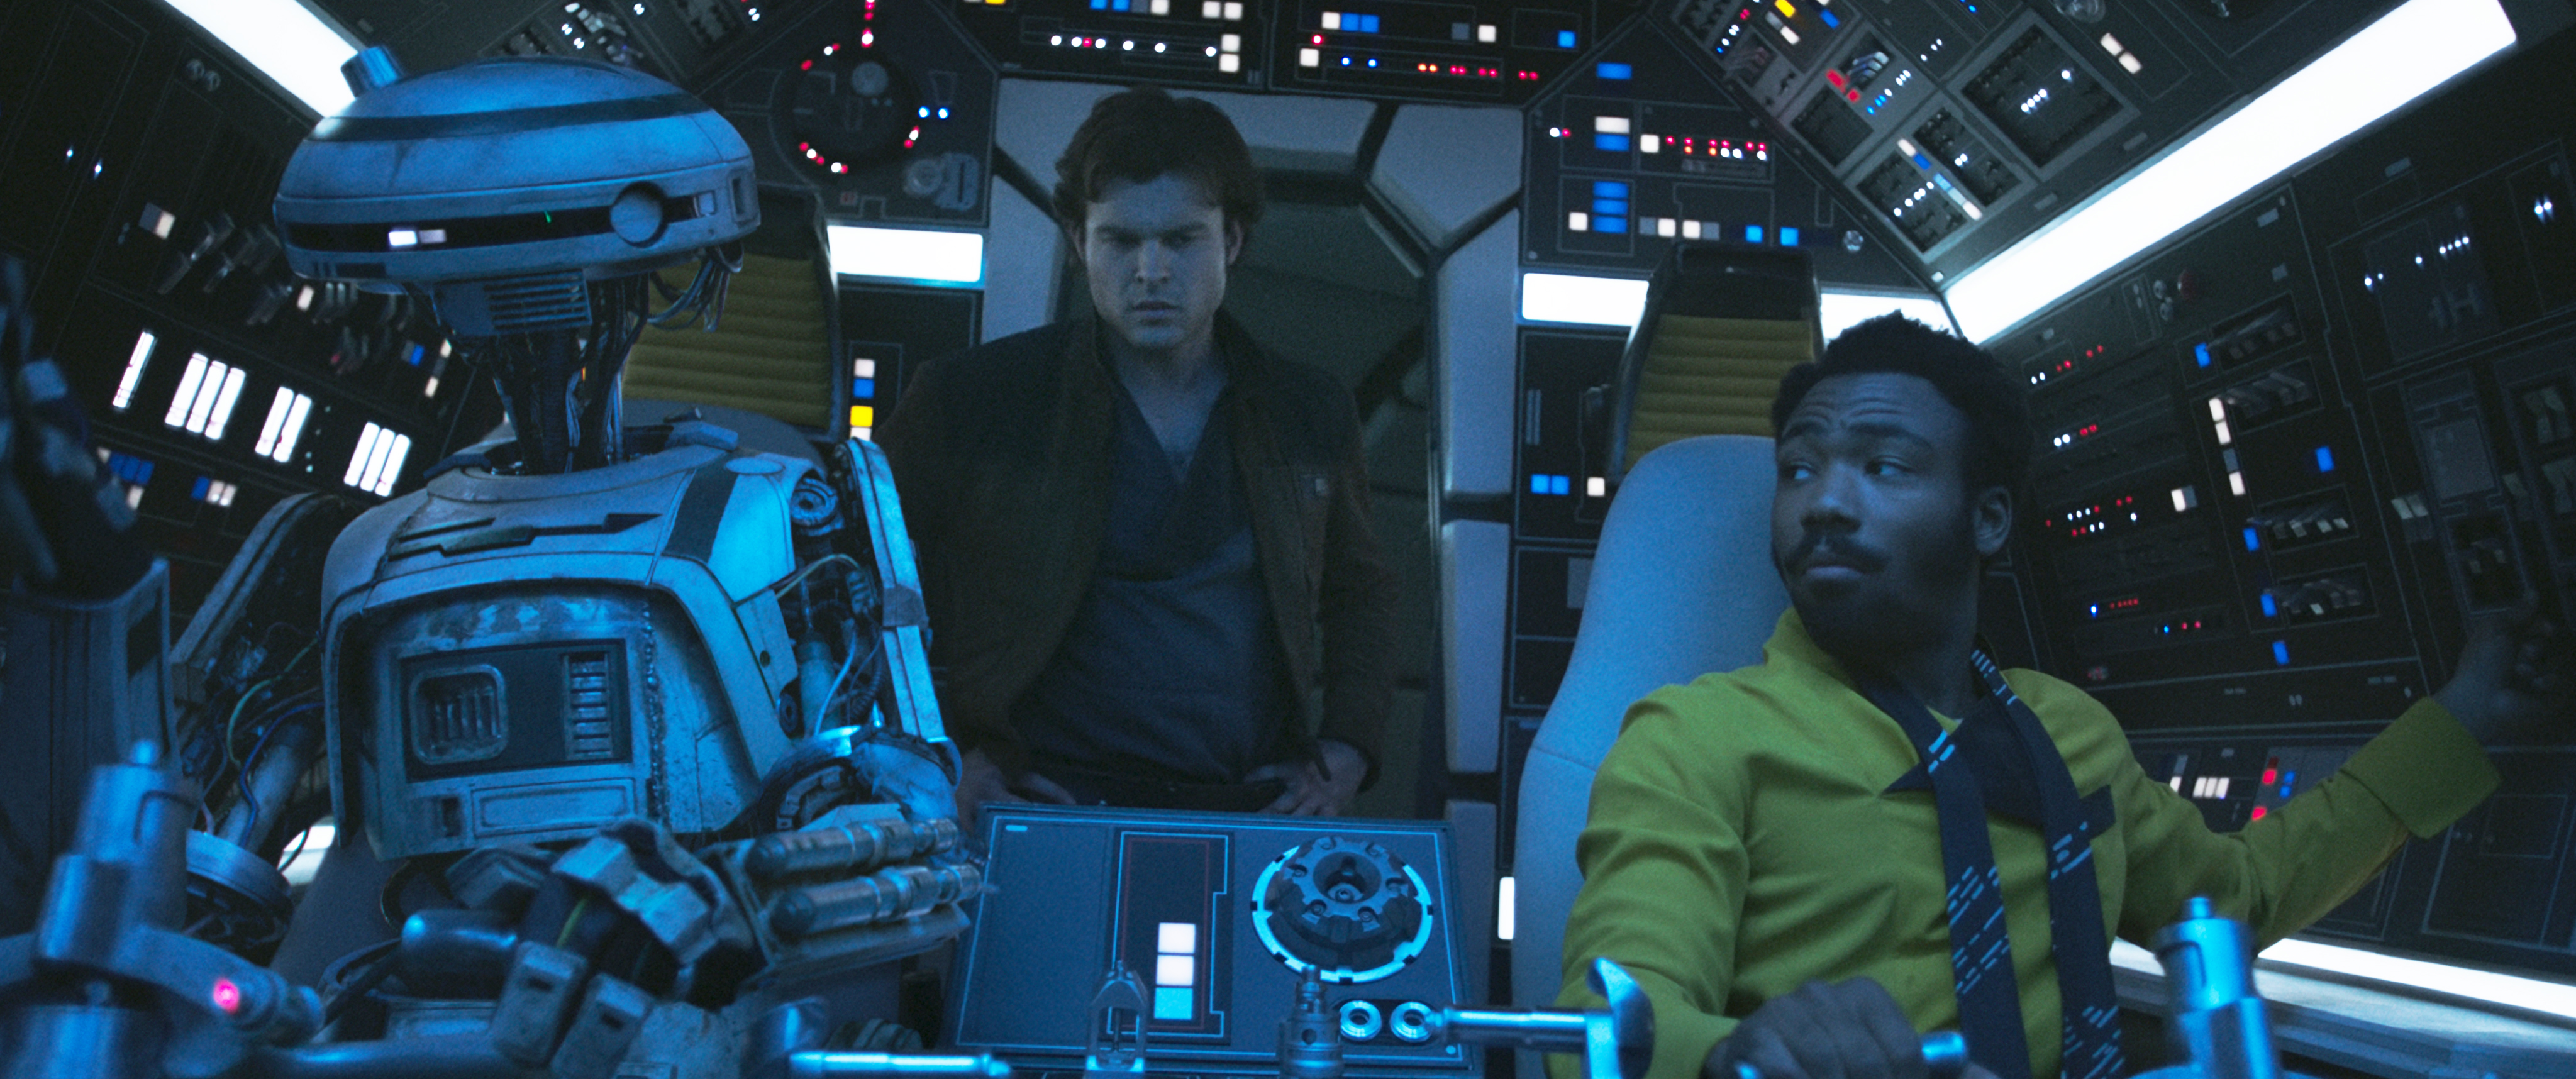 Solo: A Star Wars Story – Spoiler Free Review by Mr. DAPs